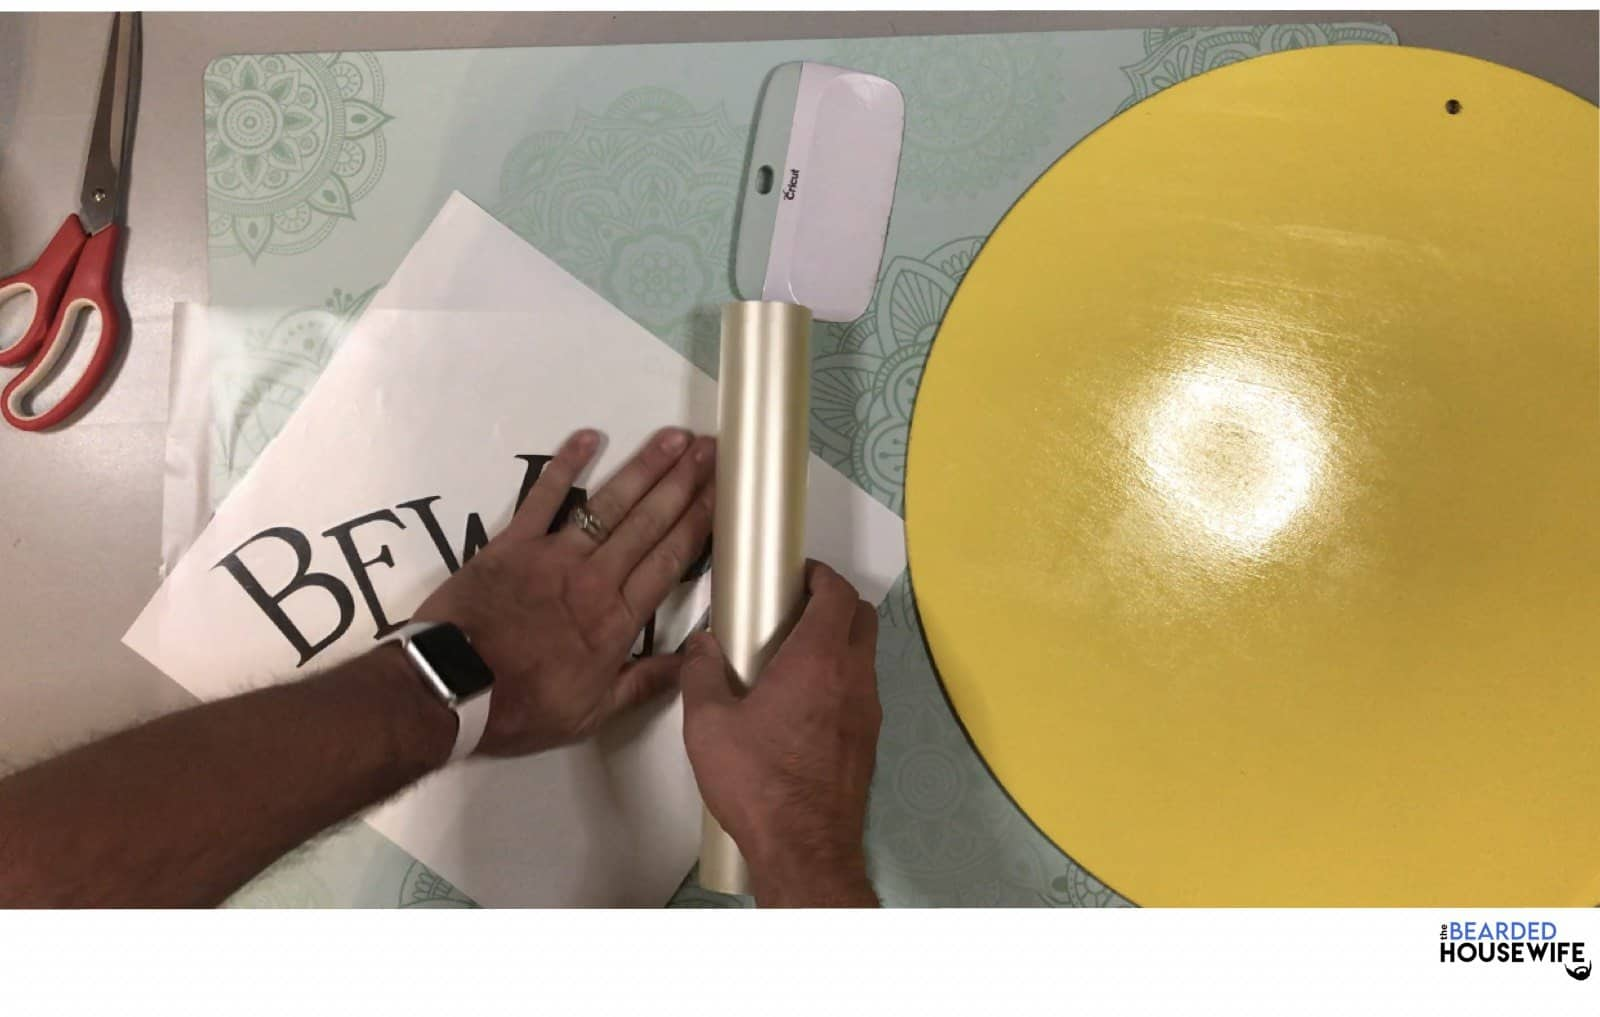 once your sign has cured, weed your vinyl and apply transfer tape to one section